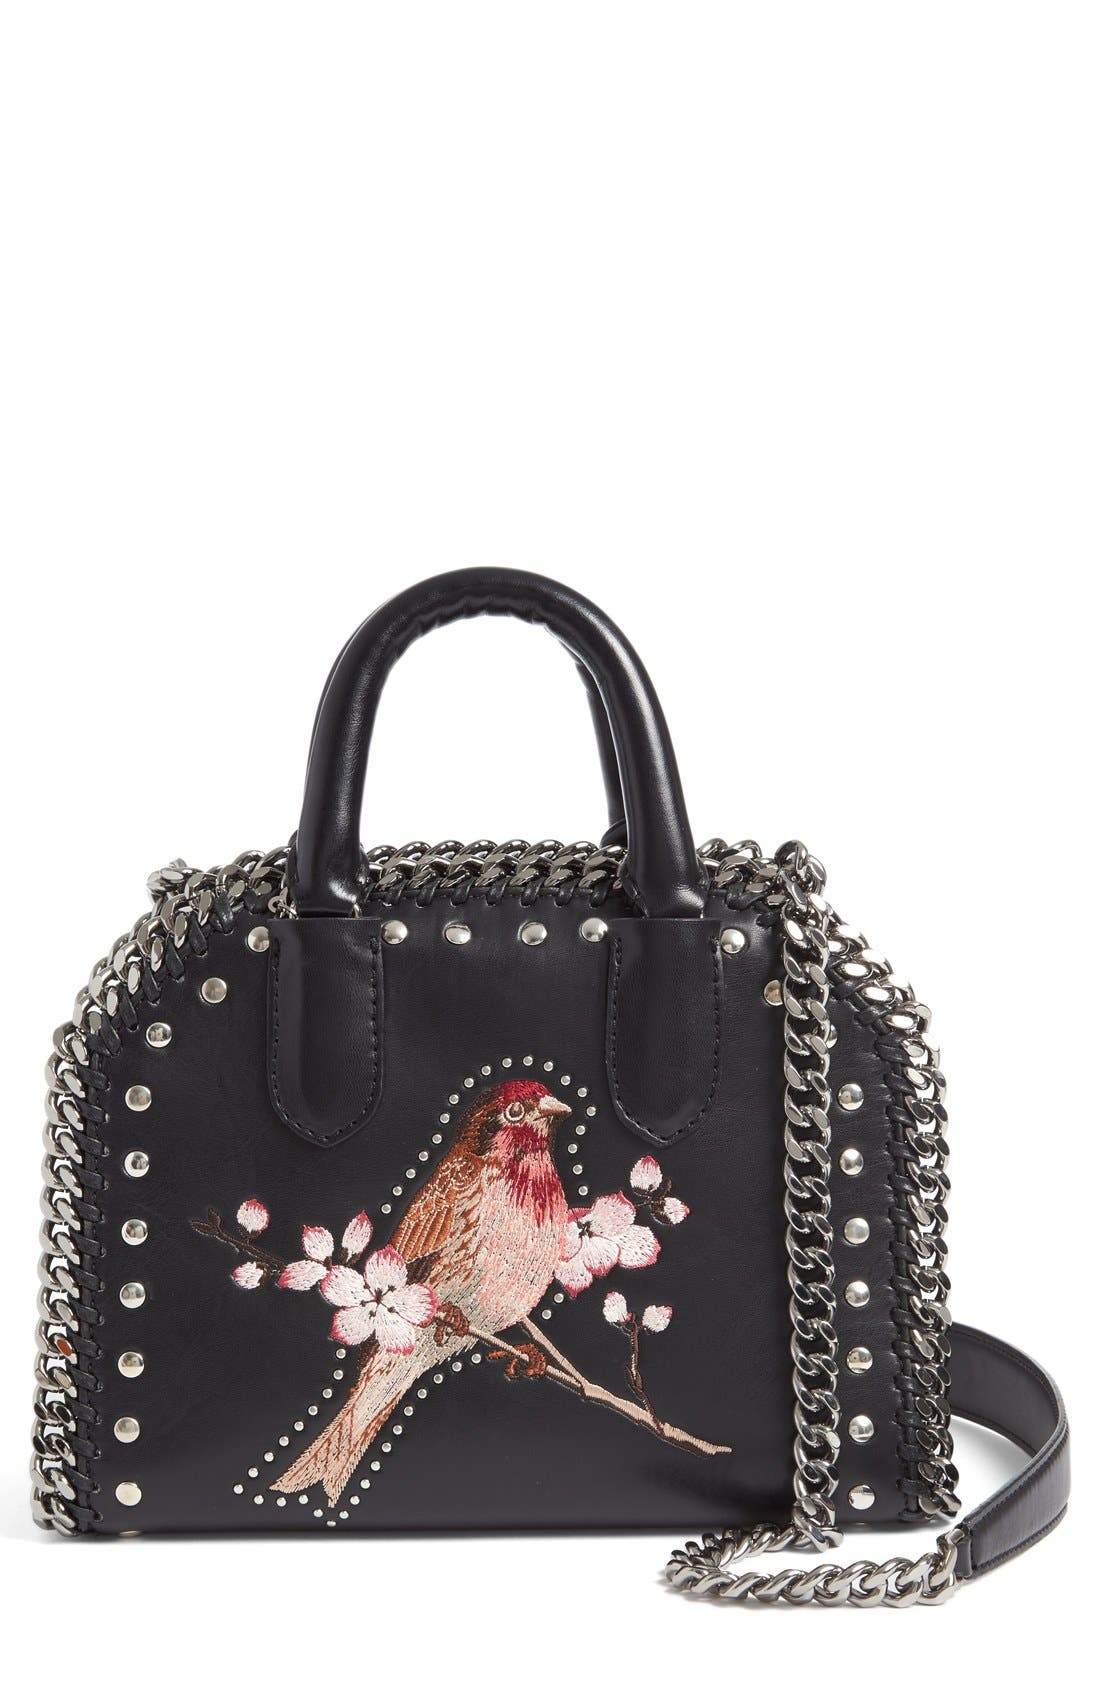 Main Image - Stella McCartney Mini Falabella Embroidered Faux Leather Tote